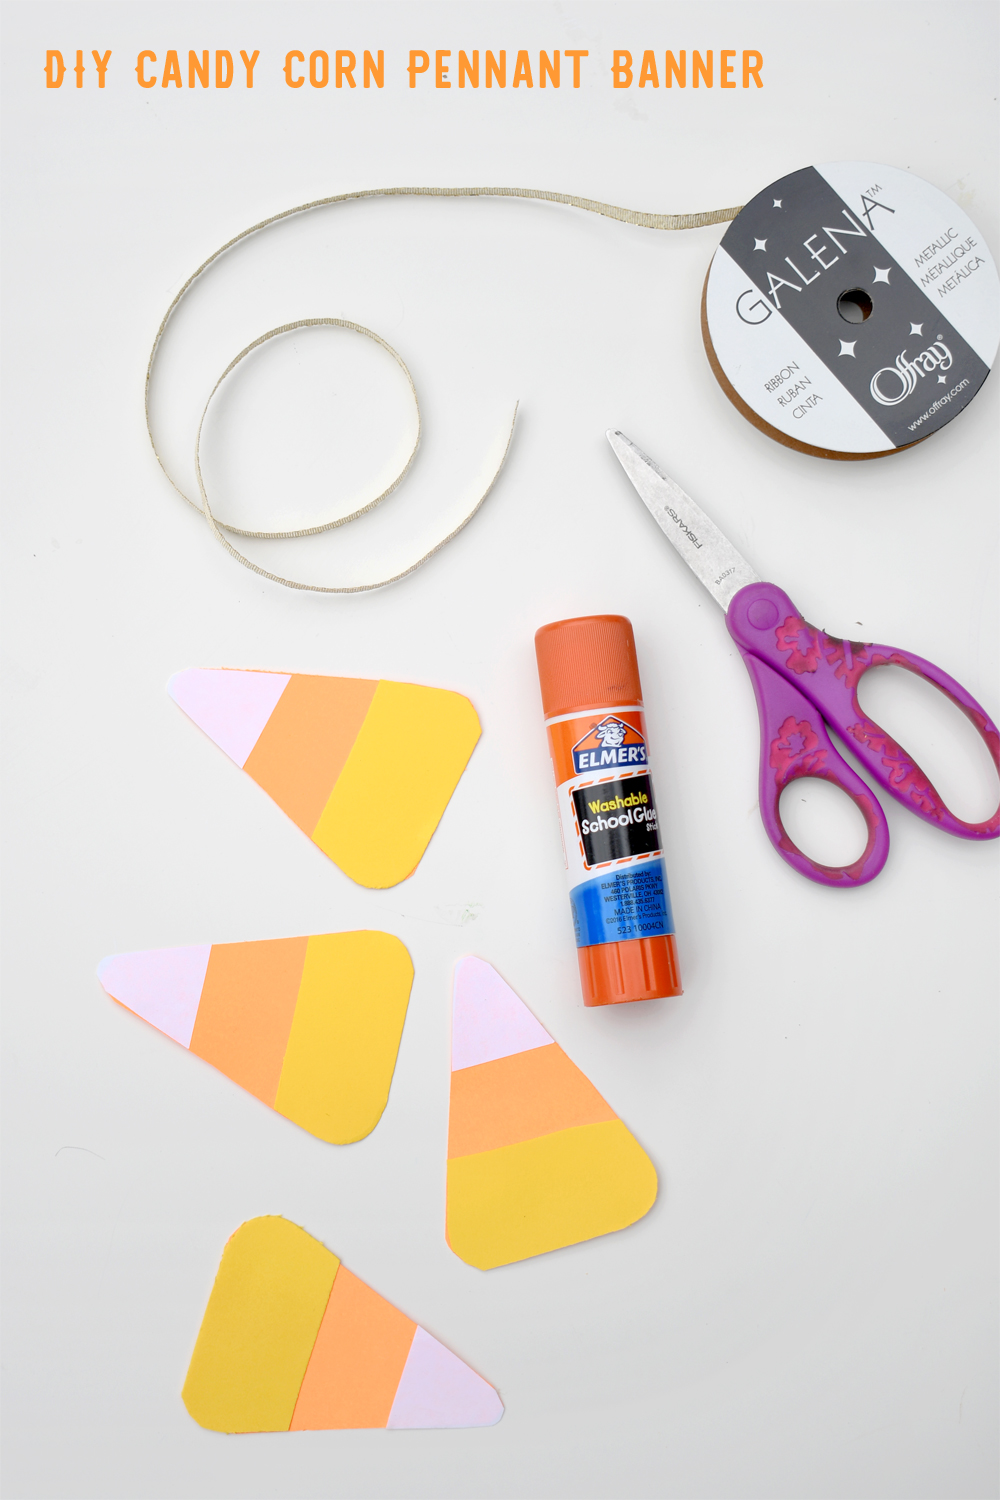 How to make a Cute DIY Candy Corn Pennant Banner